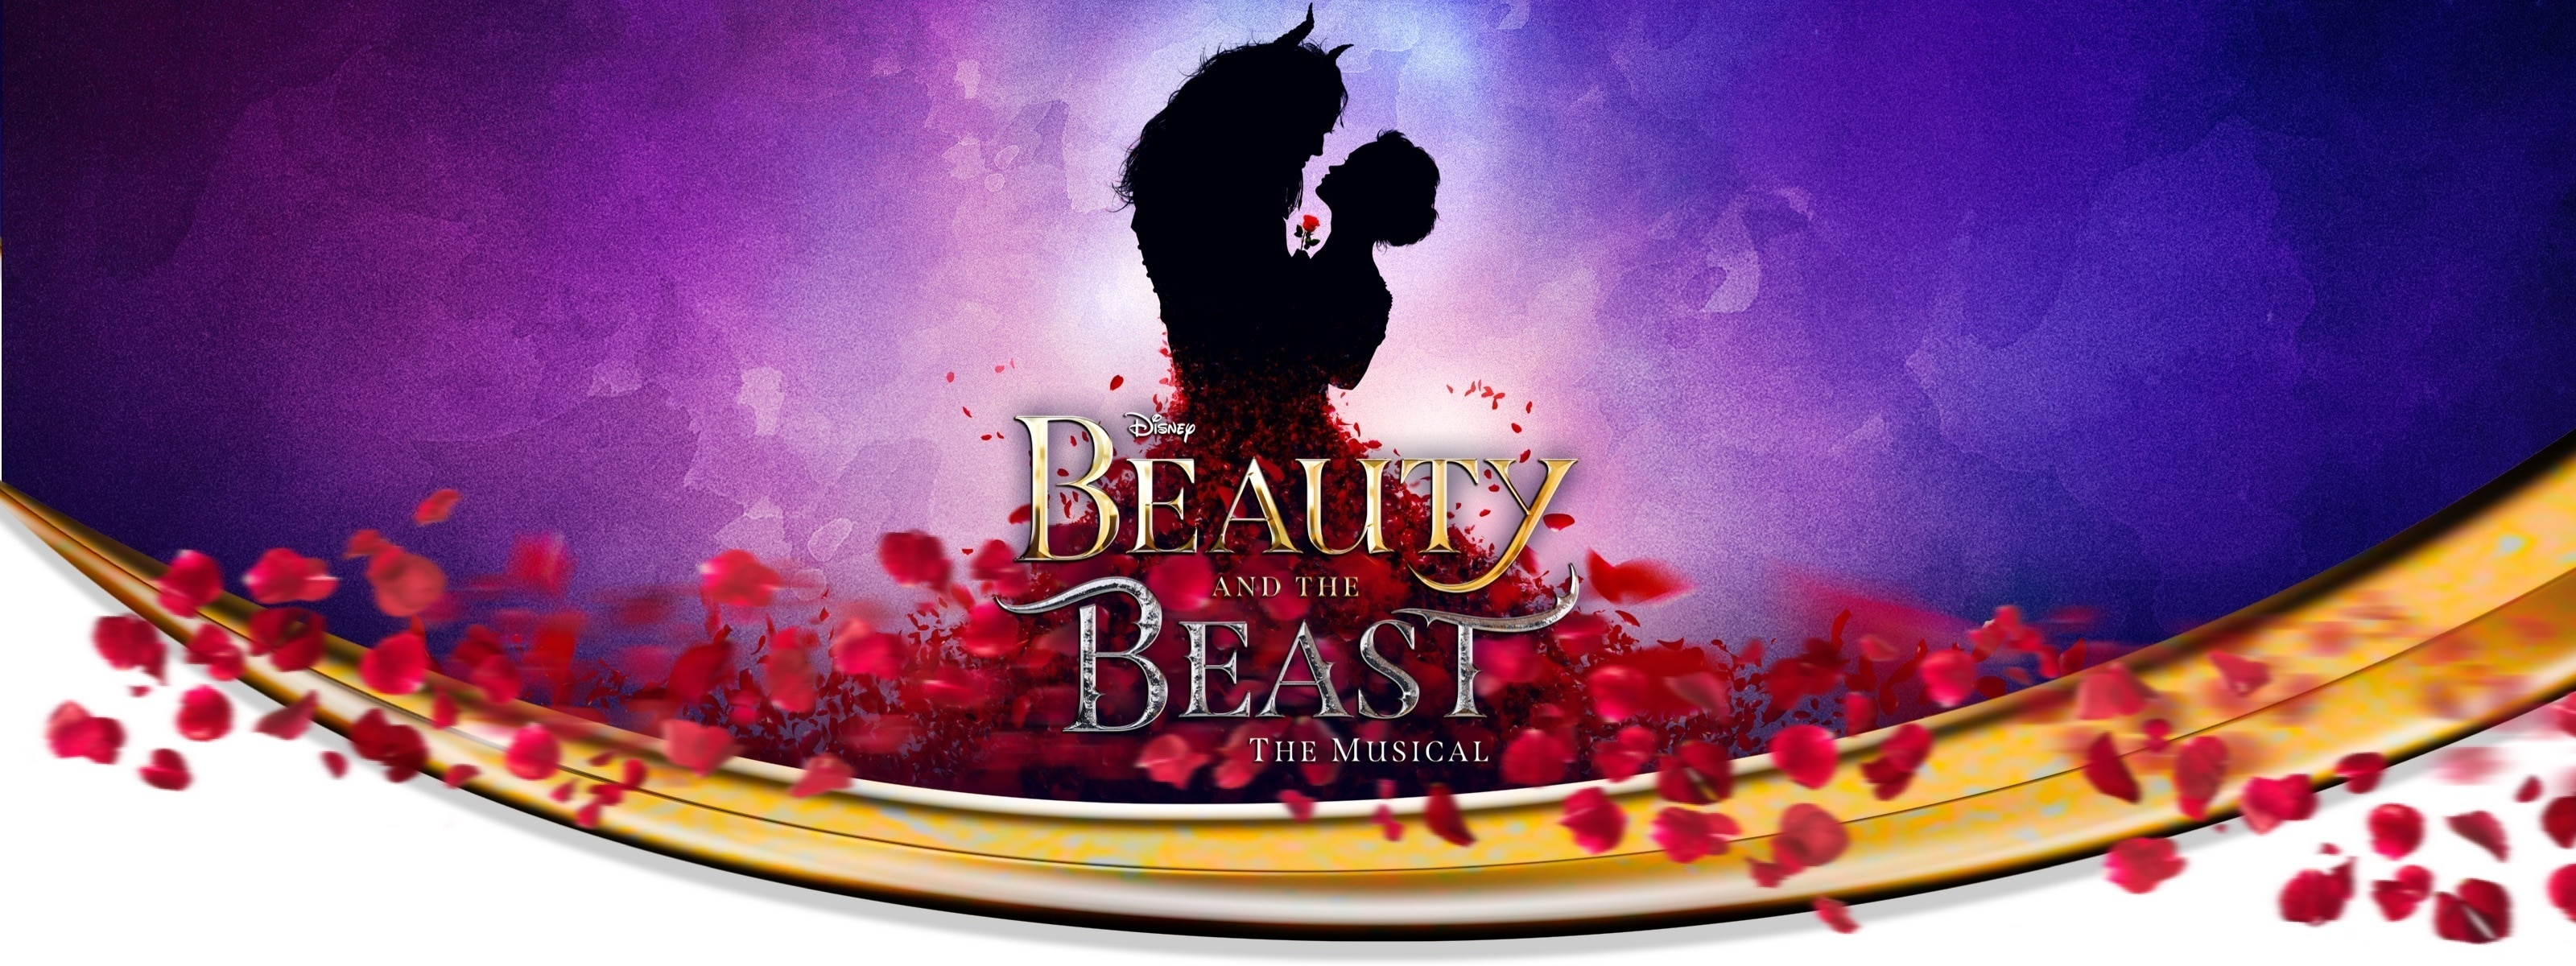 Beauty and the Beast silhouette with petal decoration